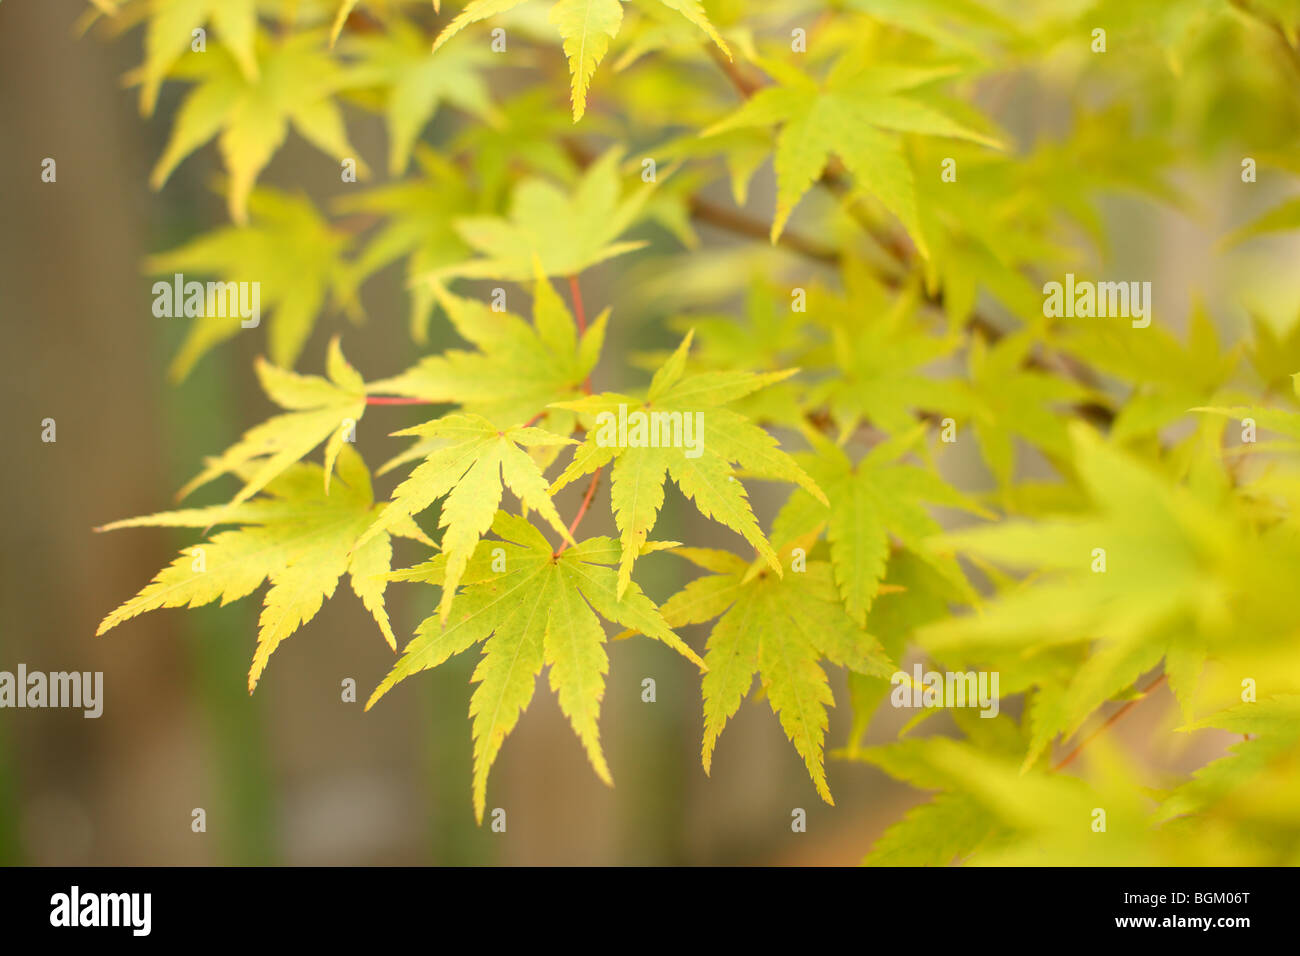 Yellow Japanese Maple leaves - Stock Image